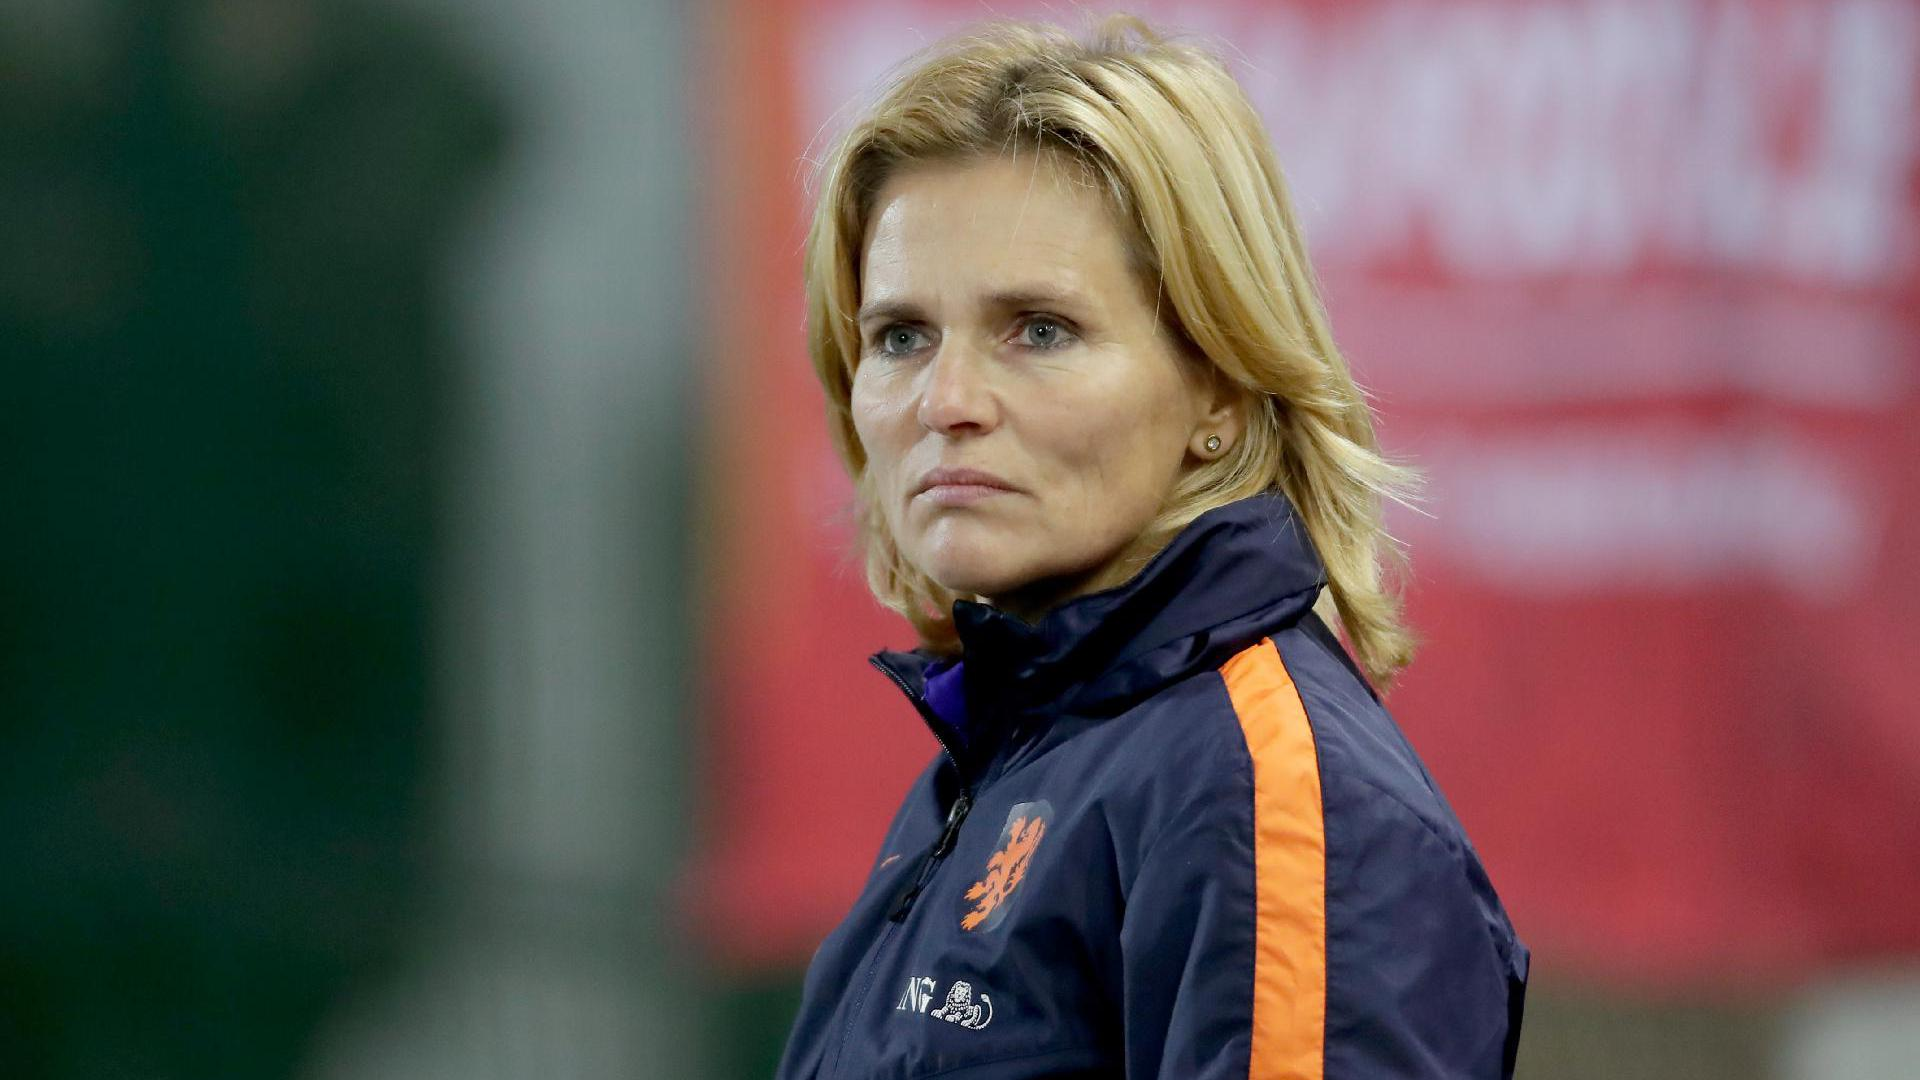 Dutch coach upbeat about future with Women's World Cup silver